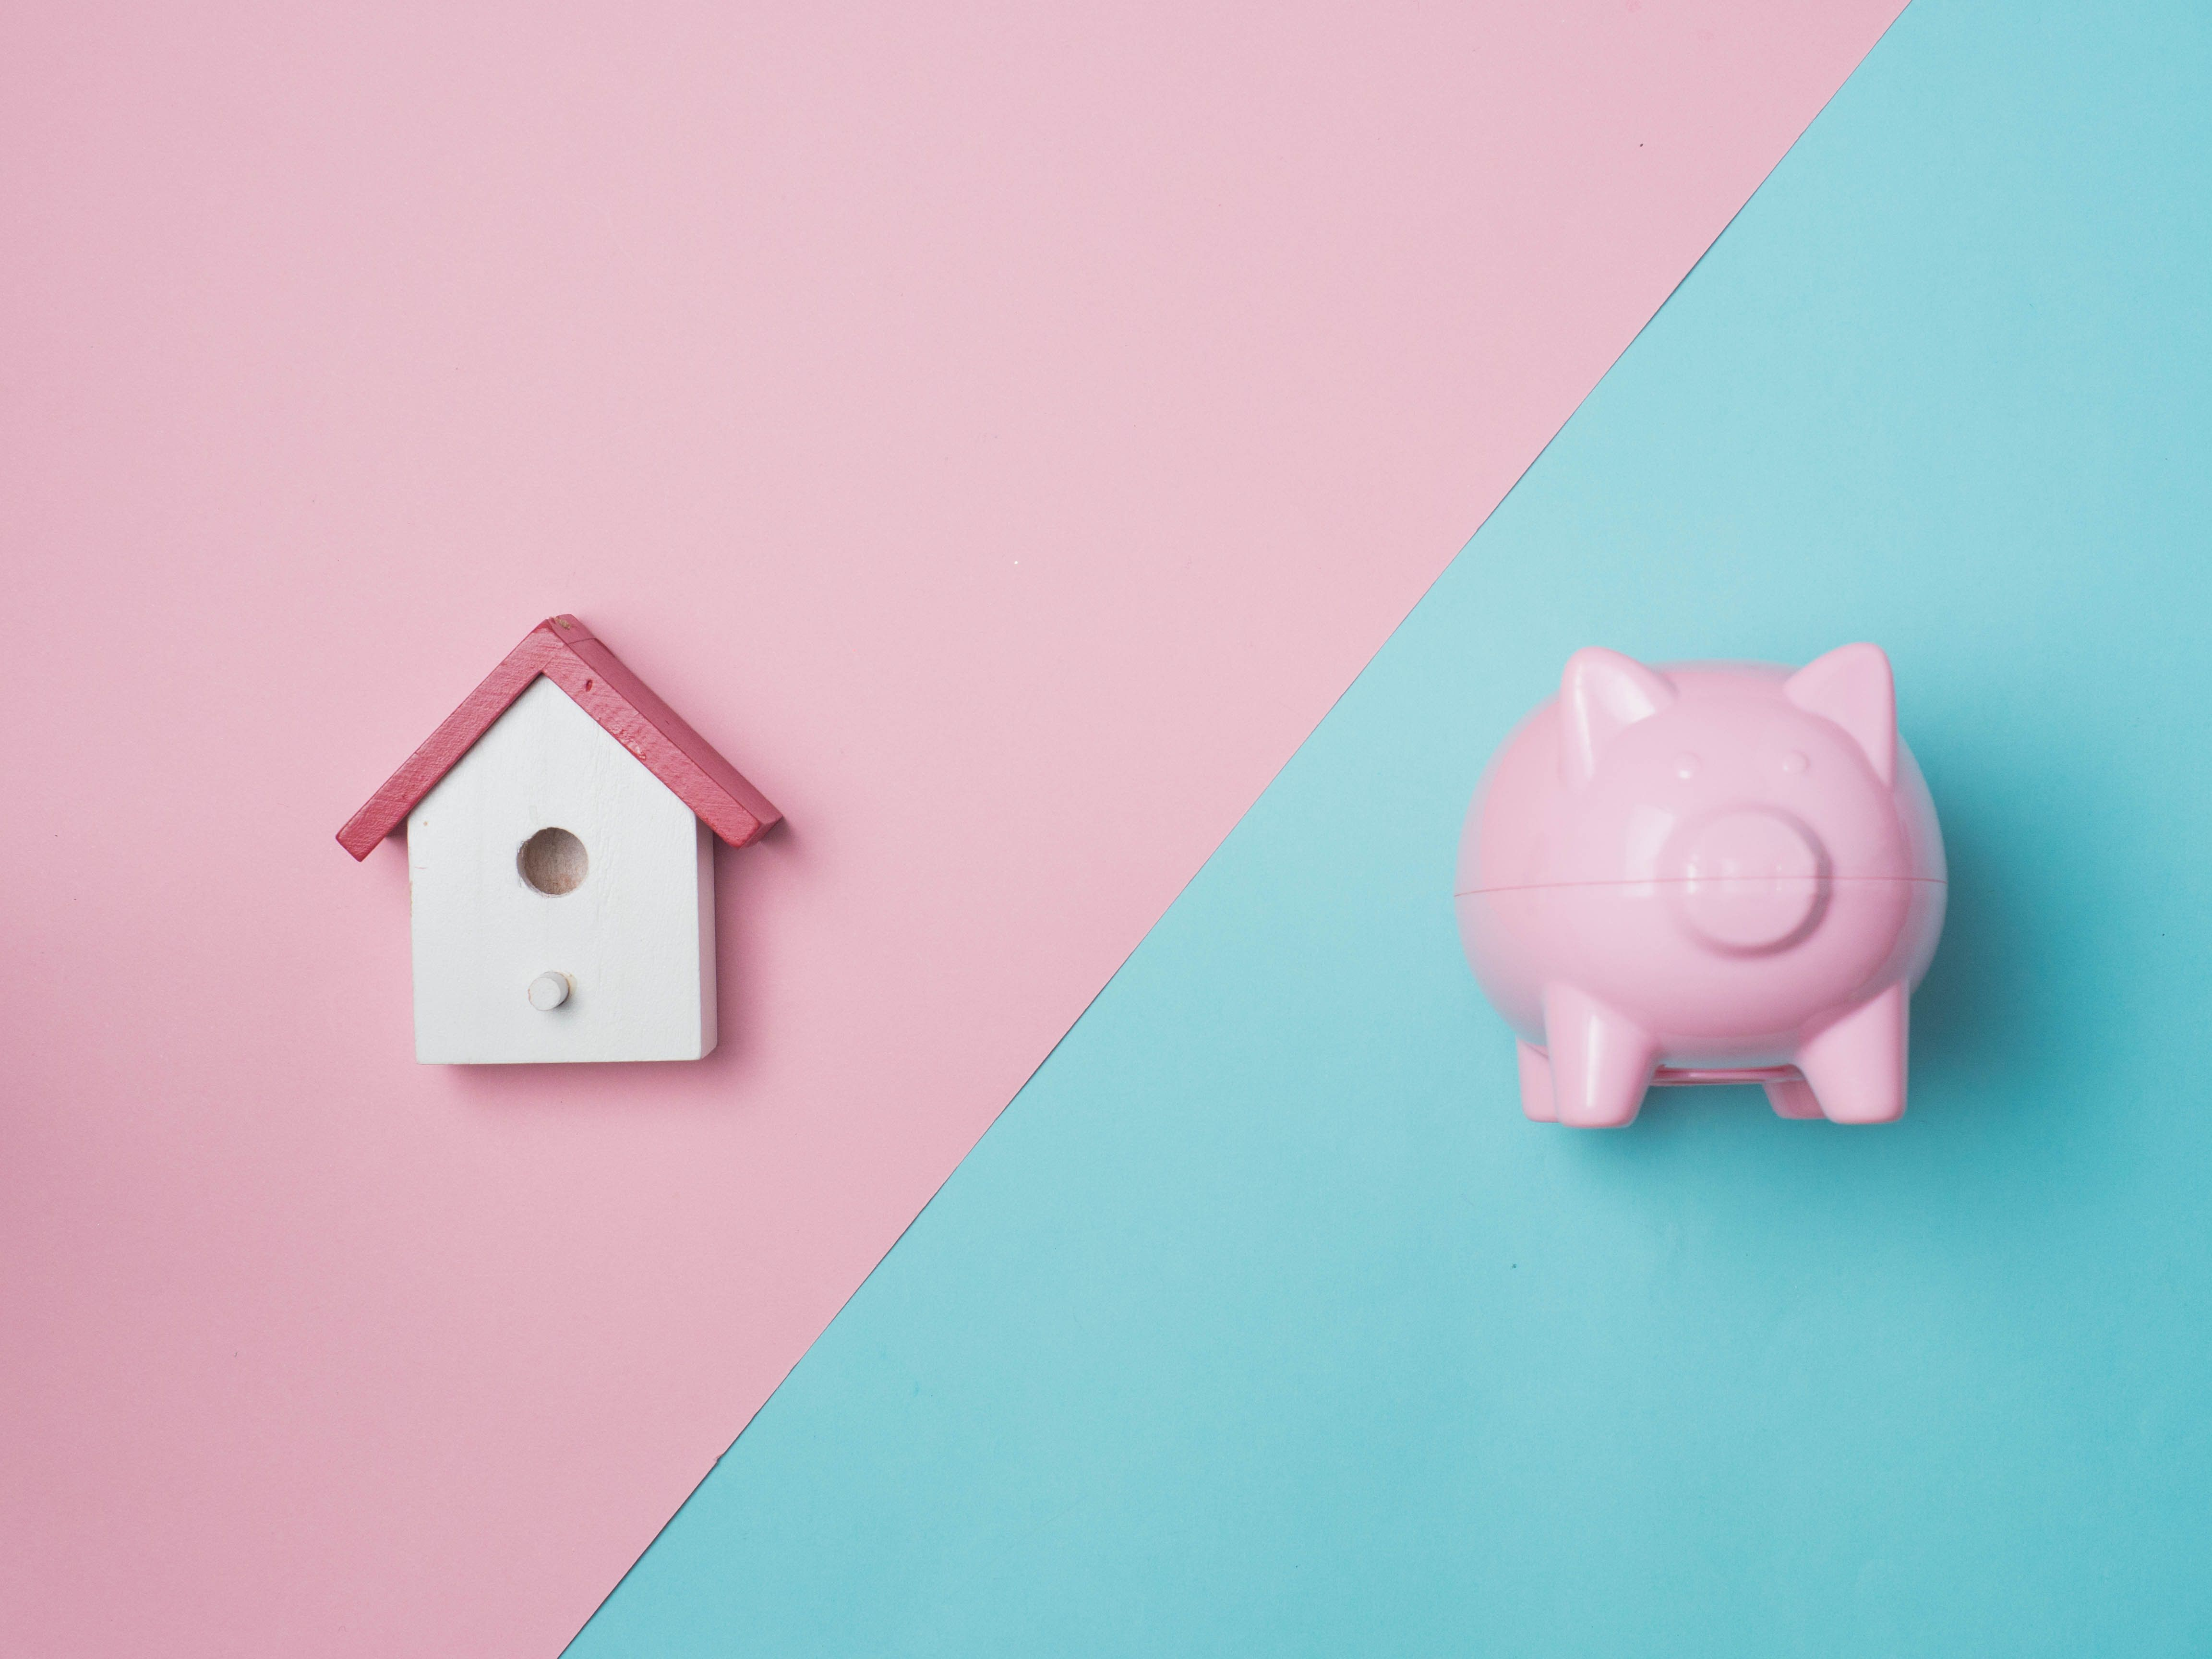 These 6 Questions Will Help You Determine If You're Ready To Buy A